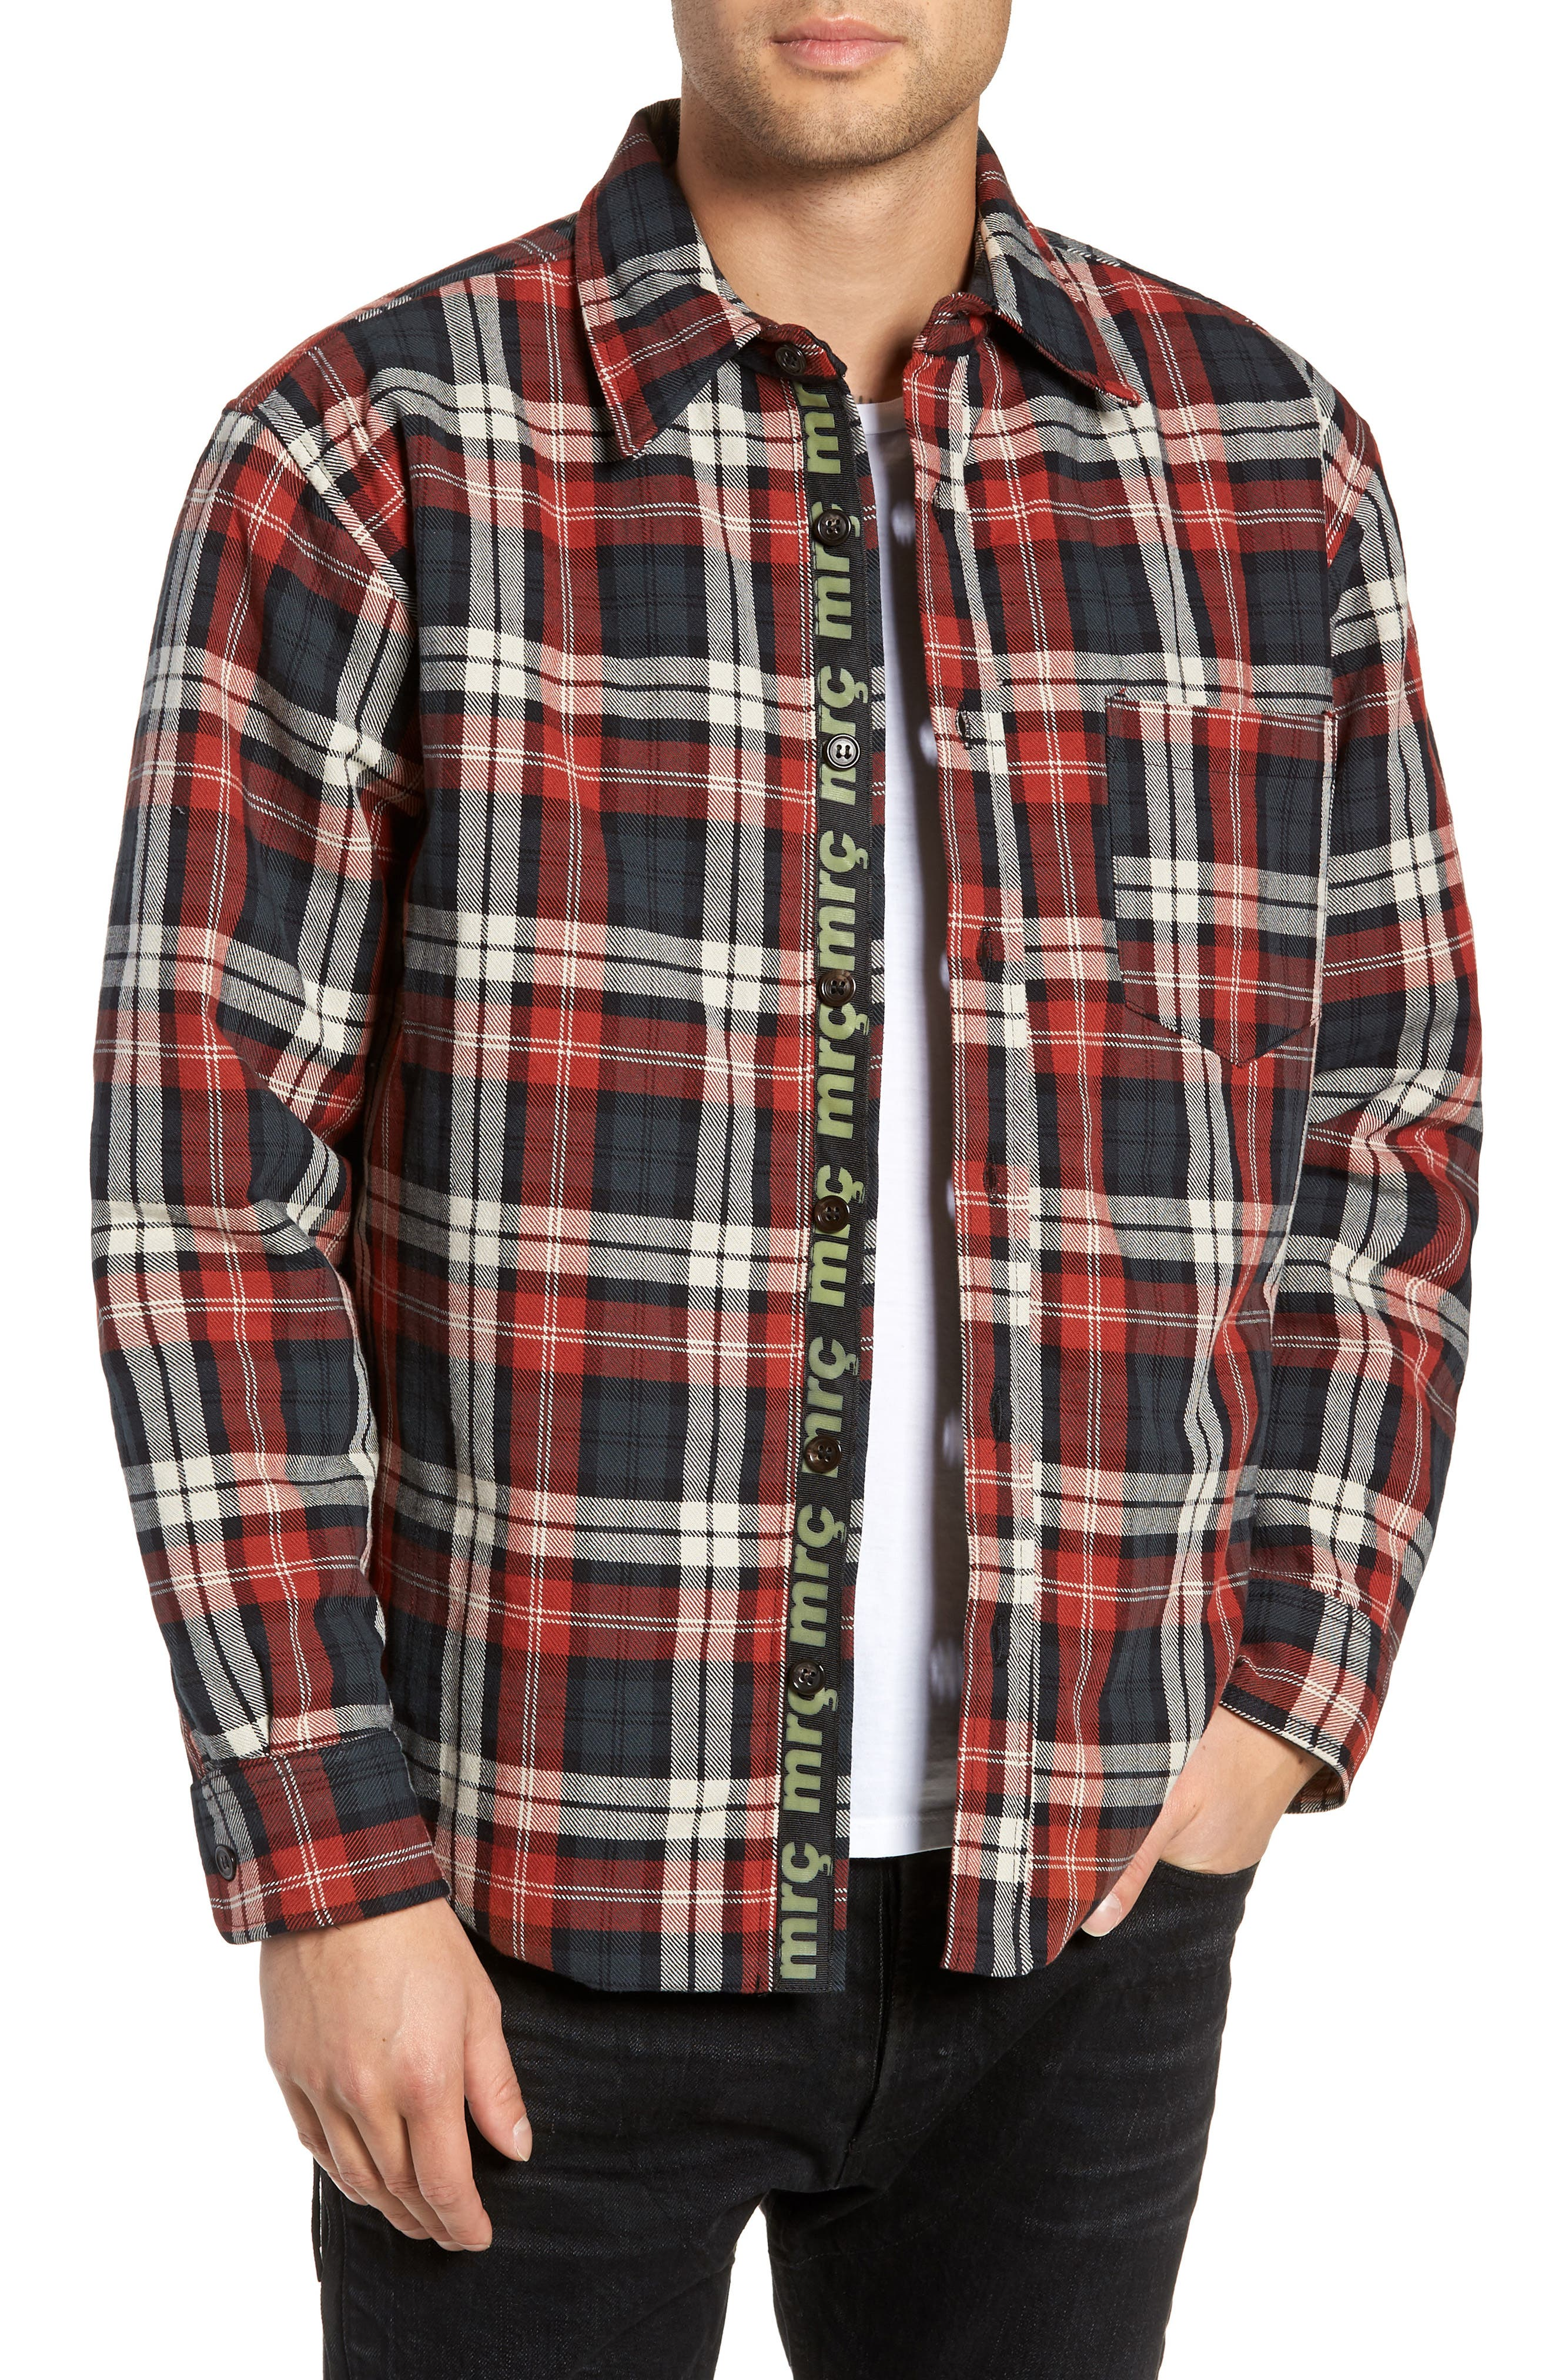 Puffy Classic Fit Work Shirt,                             Main thumbnail 1, color,                             RED PLAID